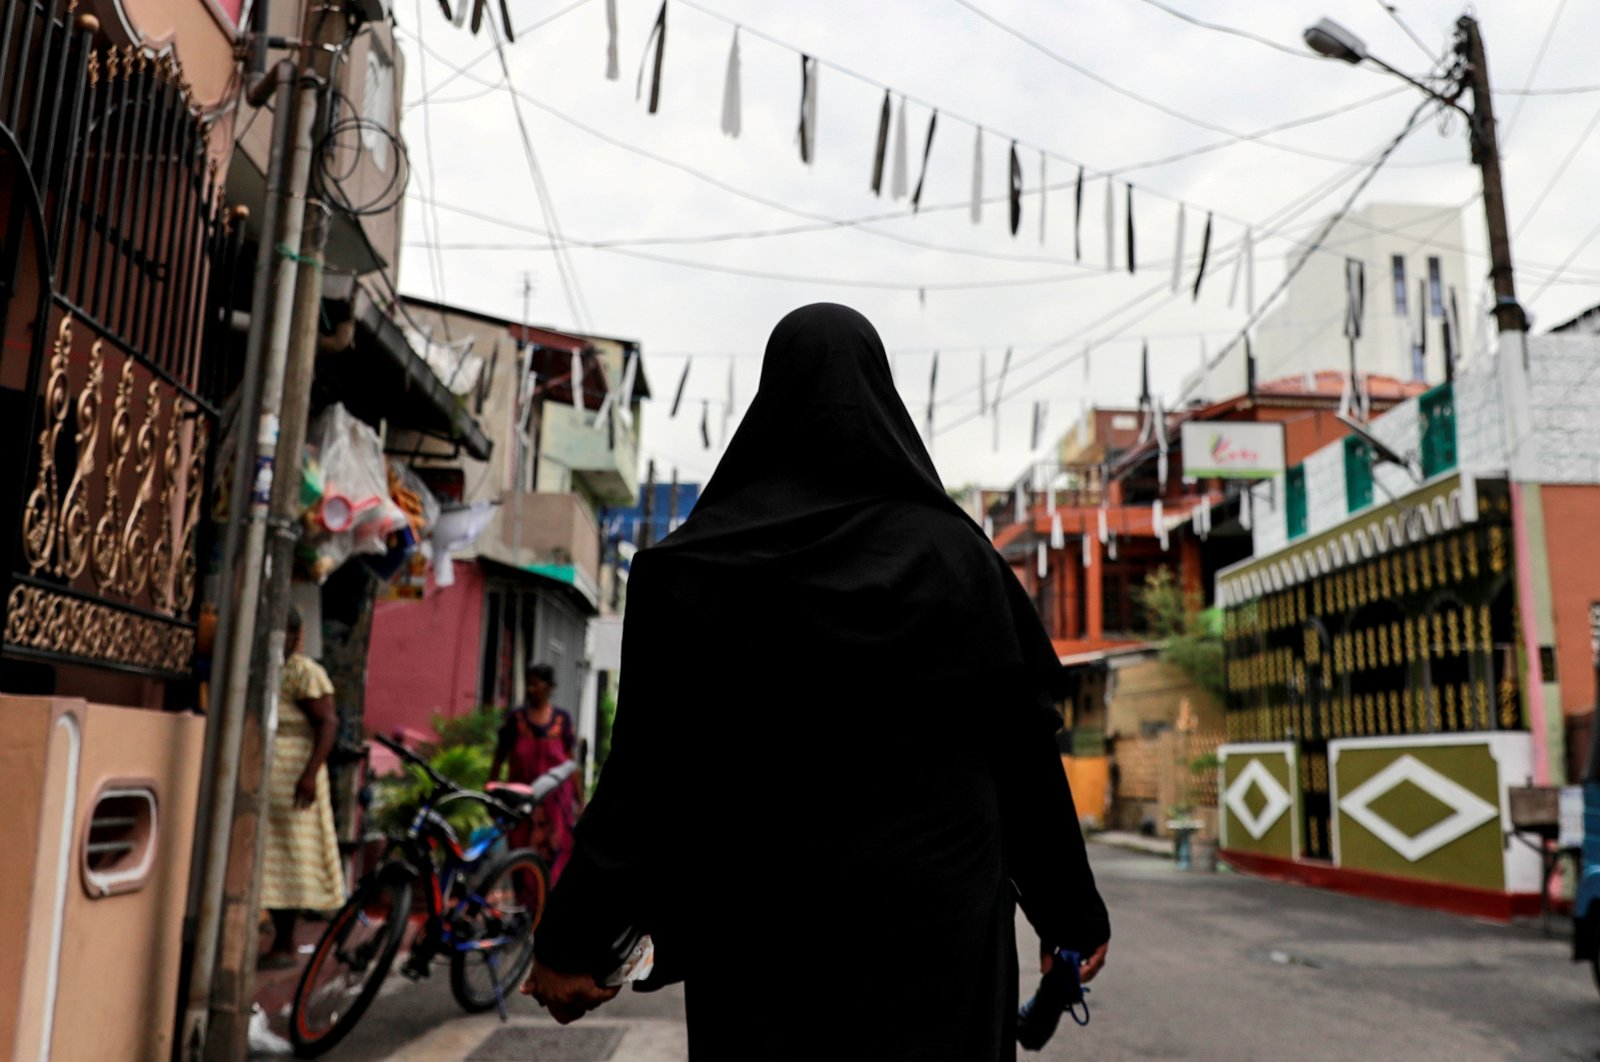 A Muslim woman wearing a hijab walks through a street near St Anthony's Shrine, days after a string of suicide bomb attacks across the island on Easter Sunday, in Colombo, Sri Lanka, April 29, 2019. (Reuters Photo)